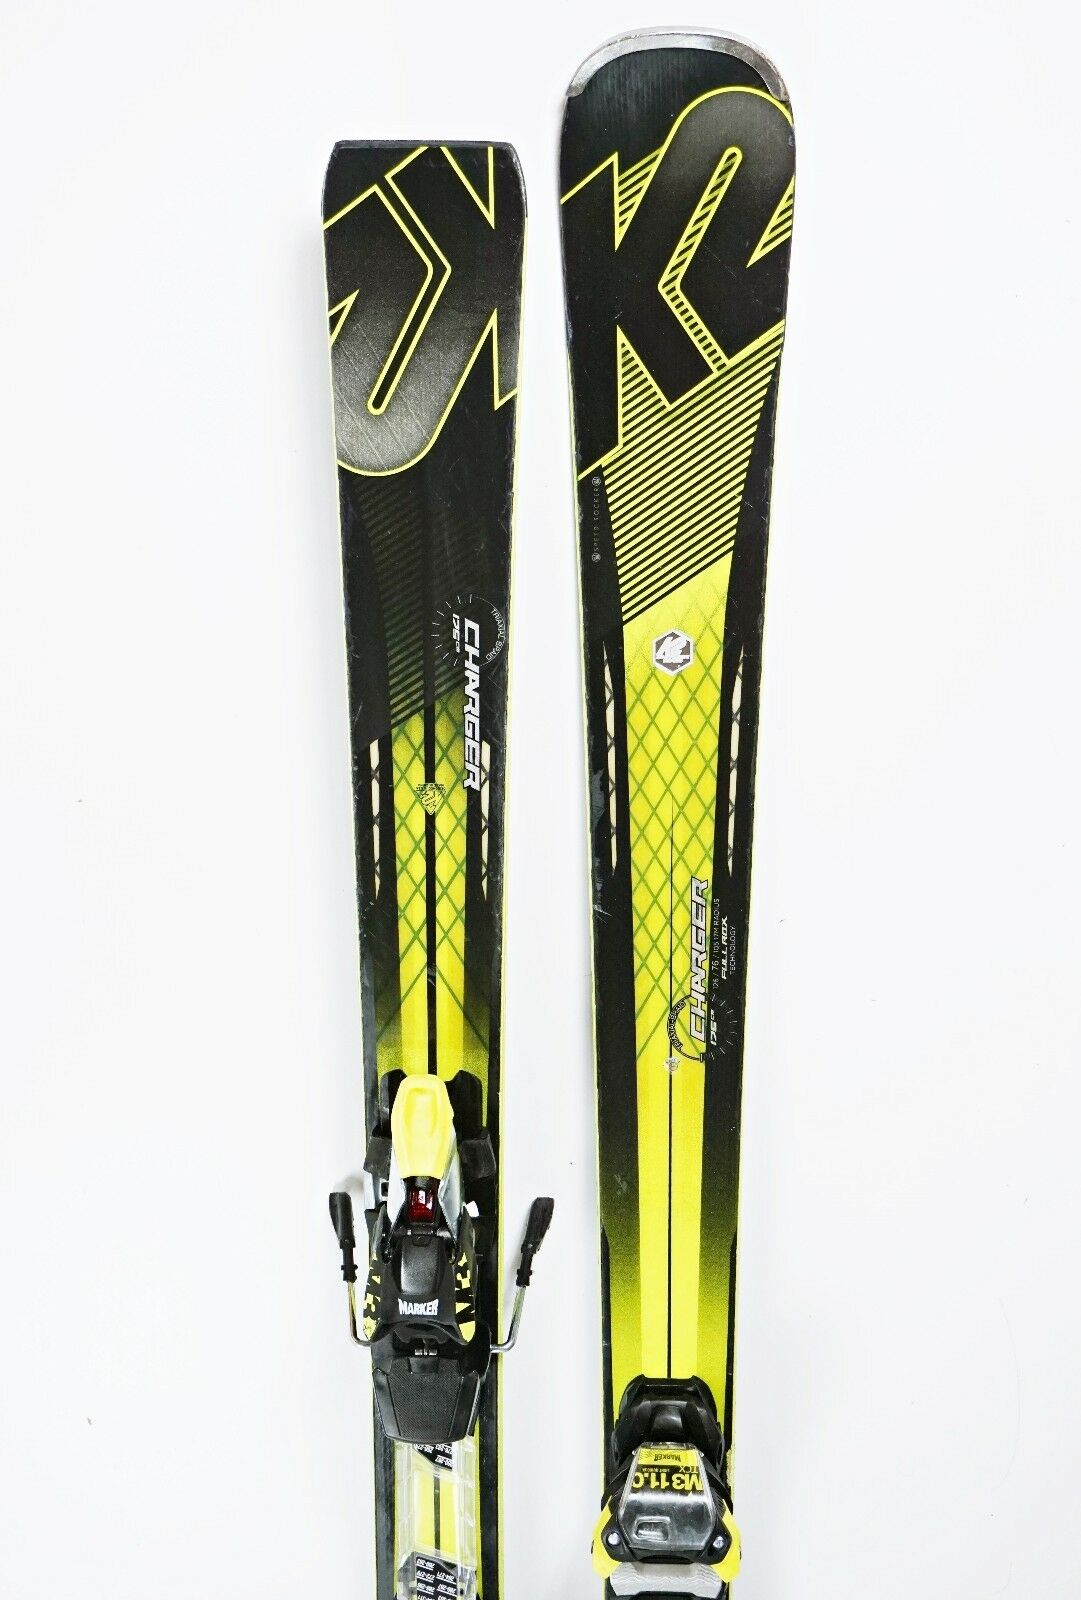 Ski K2 Charger Speed Rocker Carver Full Rox 175cm + M3 11.0  Modell 2017 (FH284)